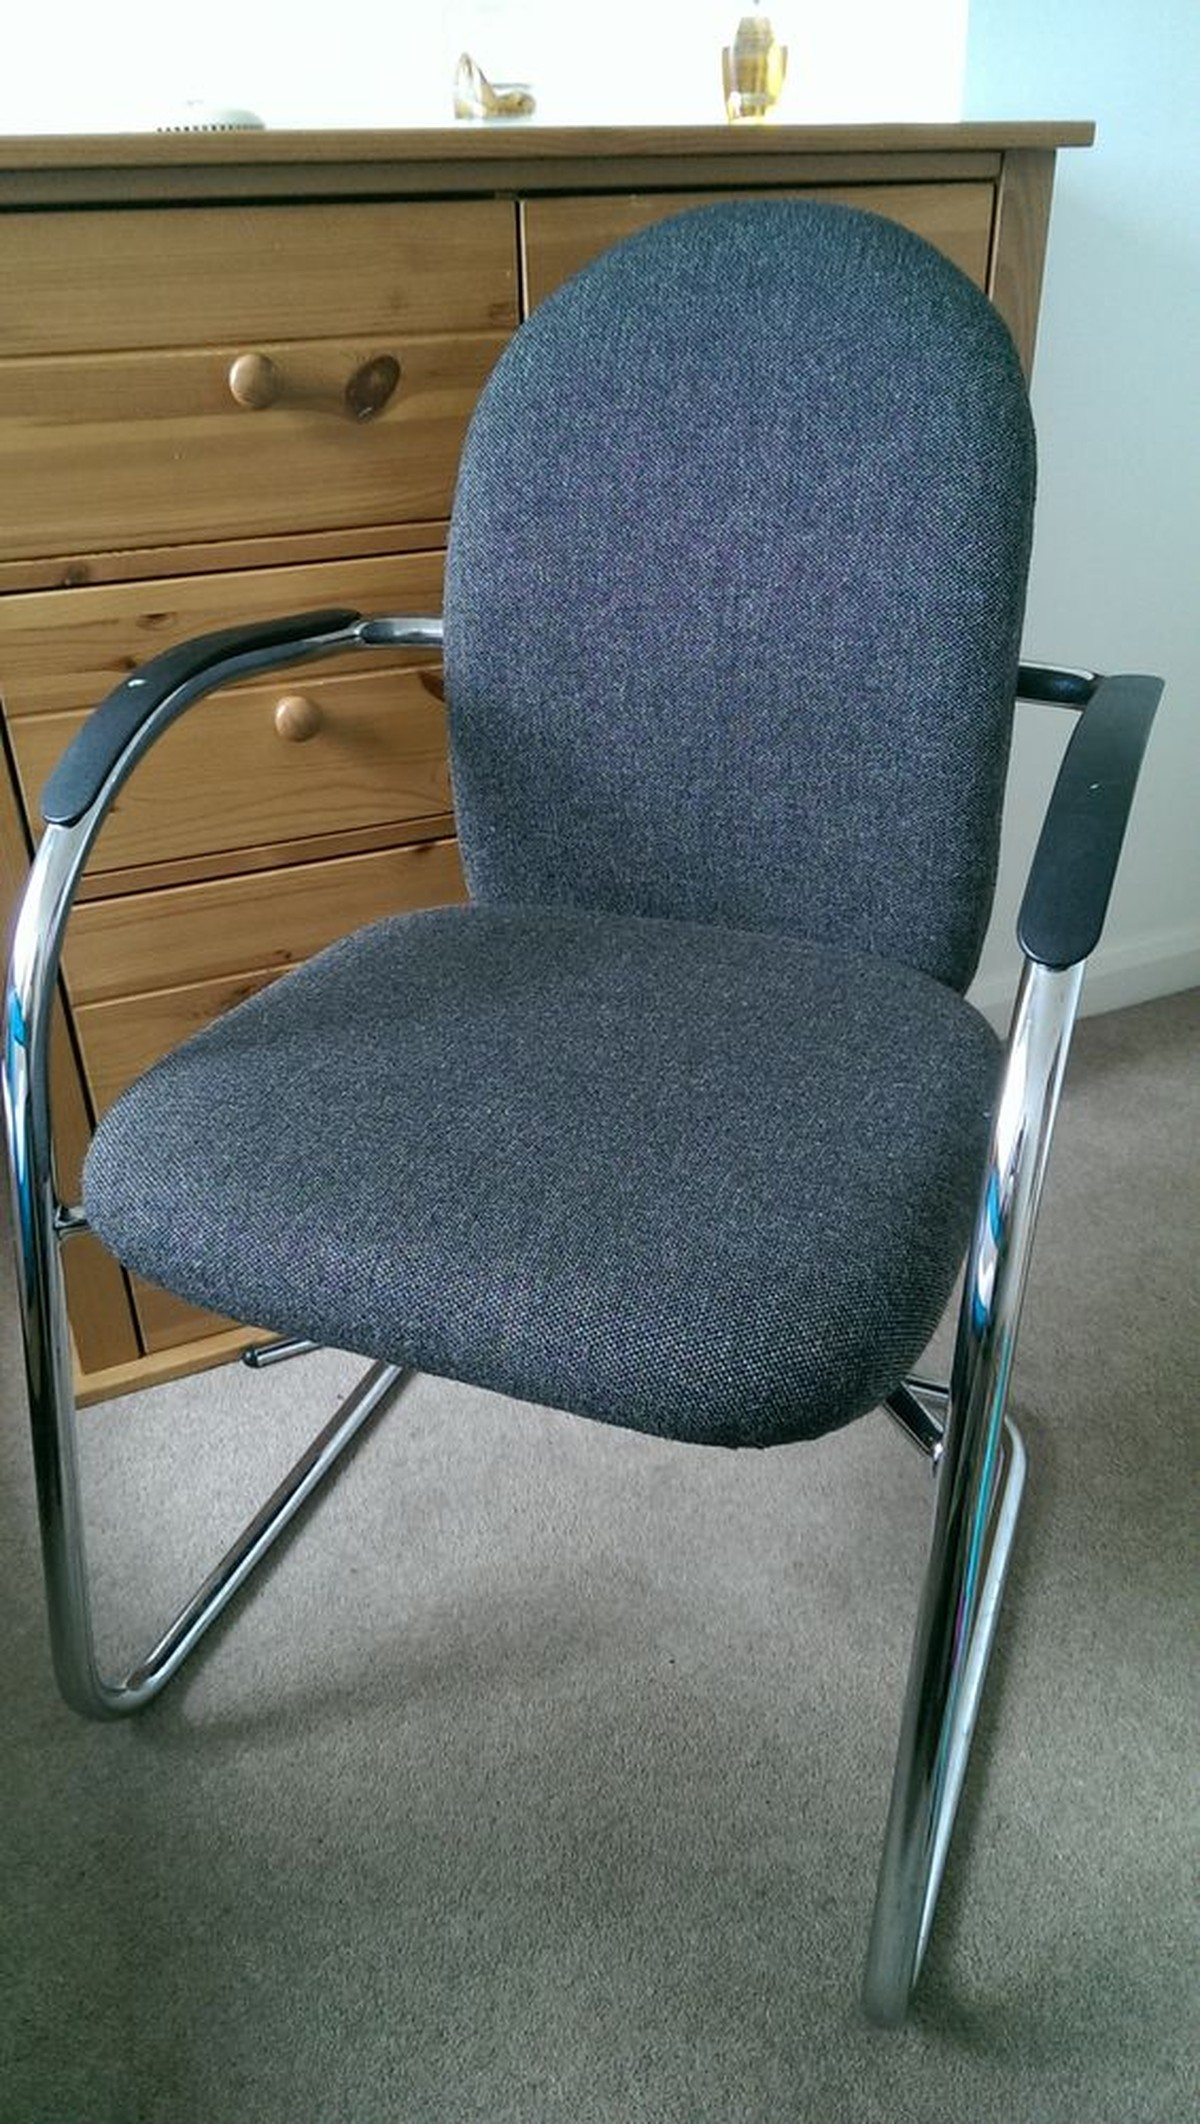 waiting room chairs for sale double high chair twins secondhand and tables office furniture 5 grey